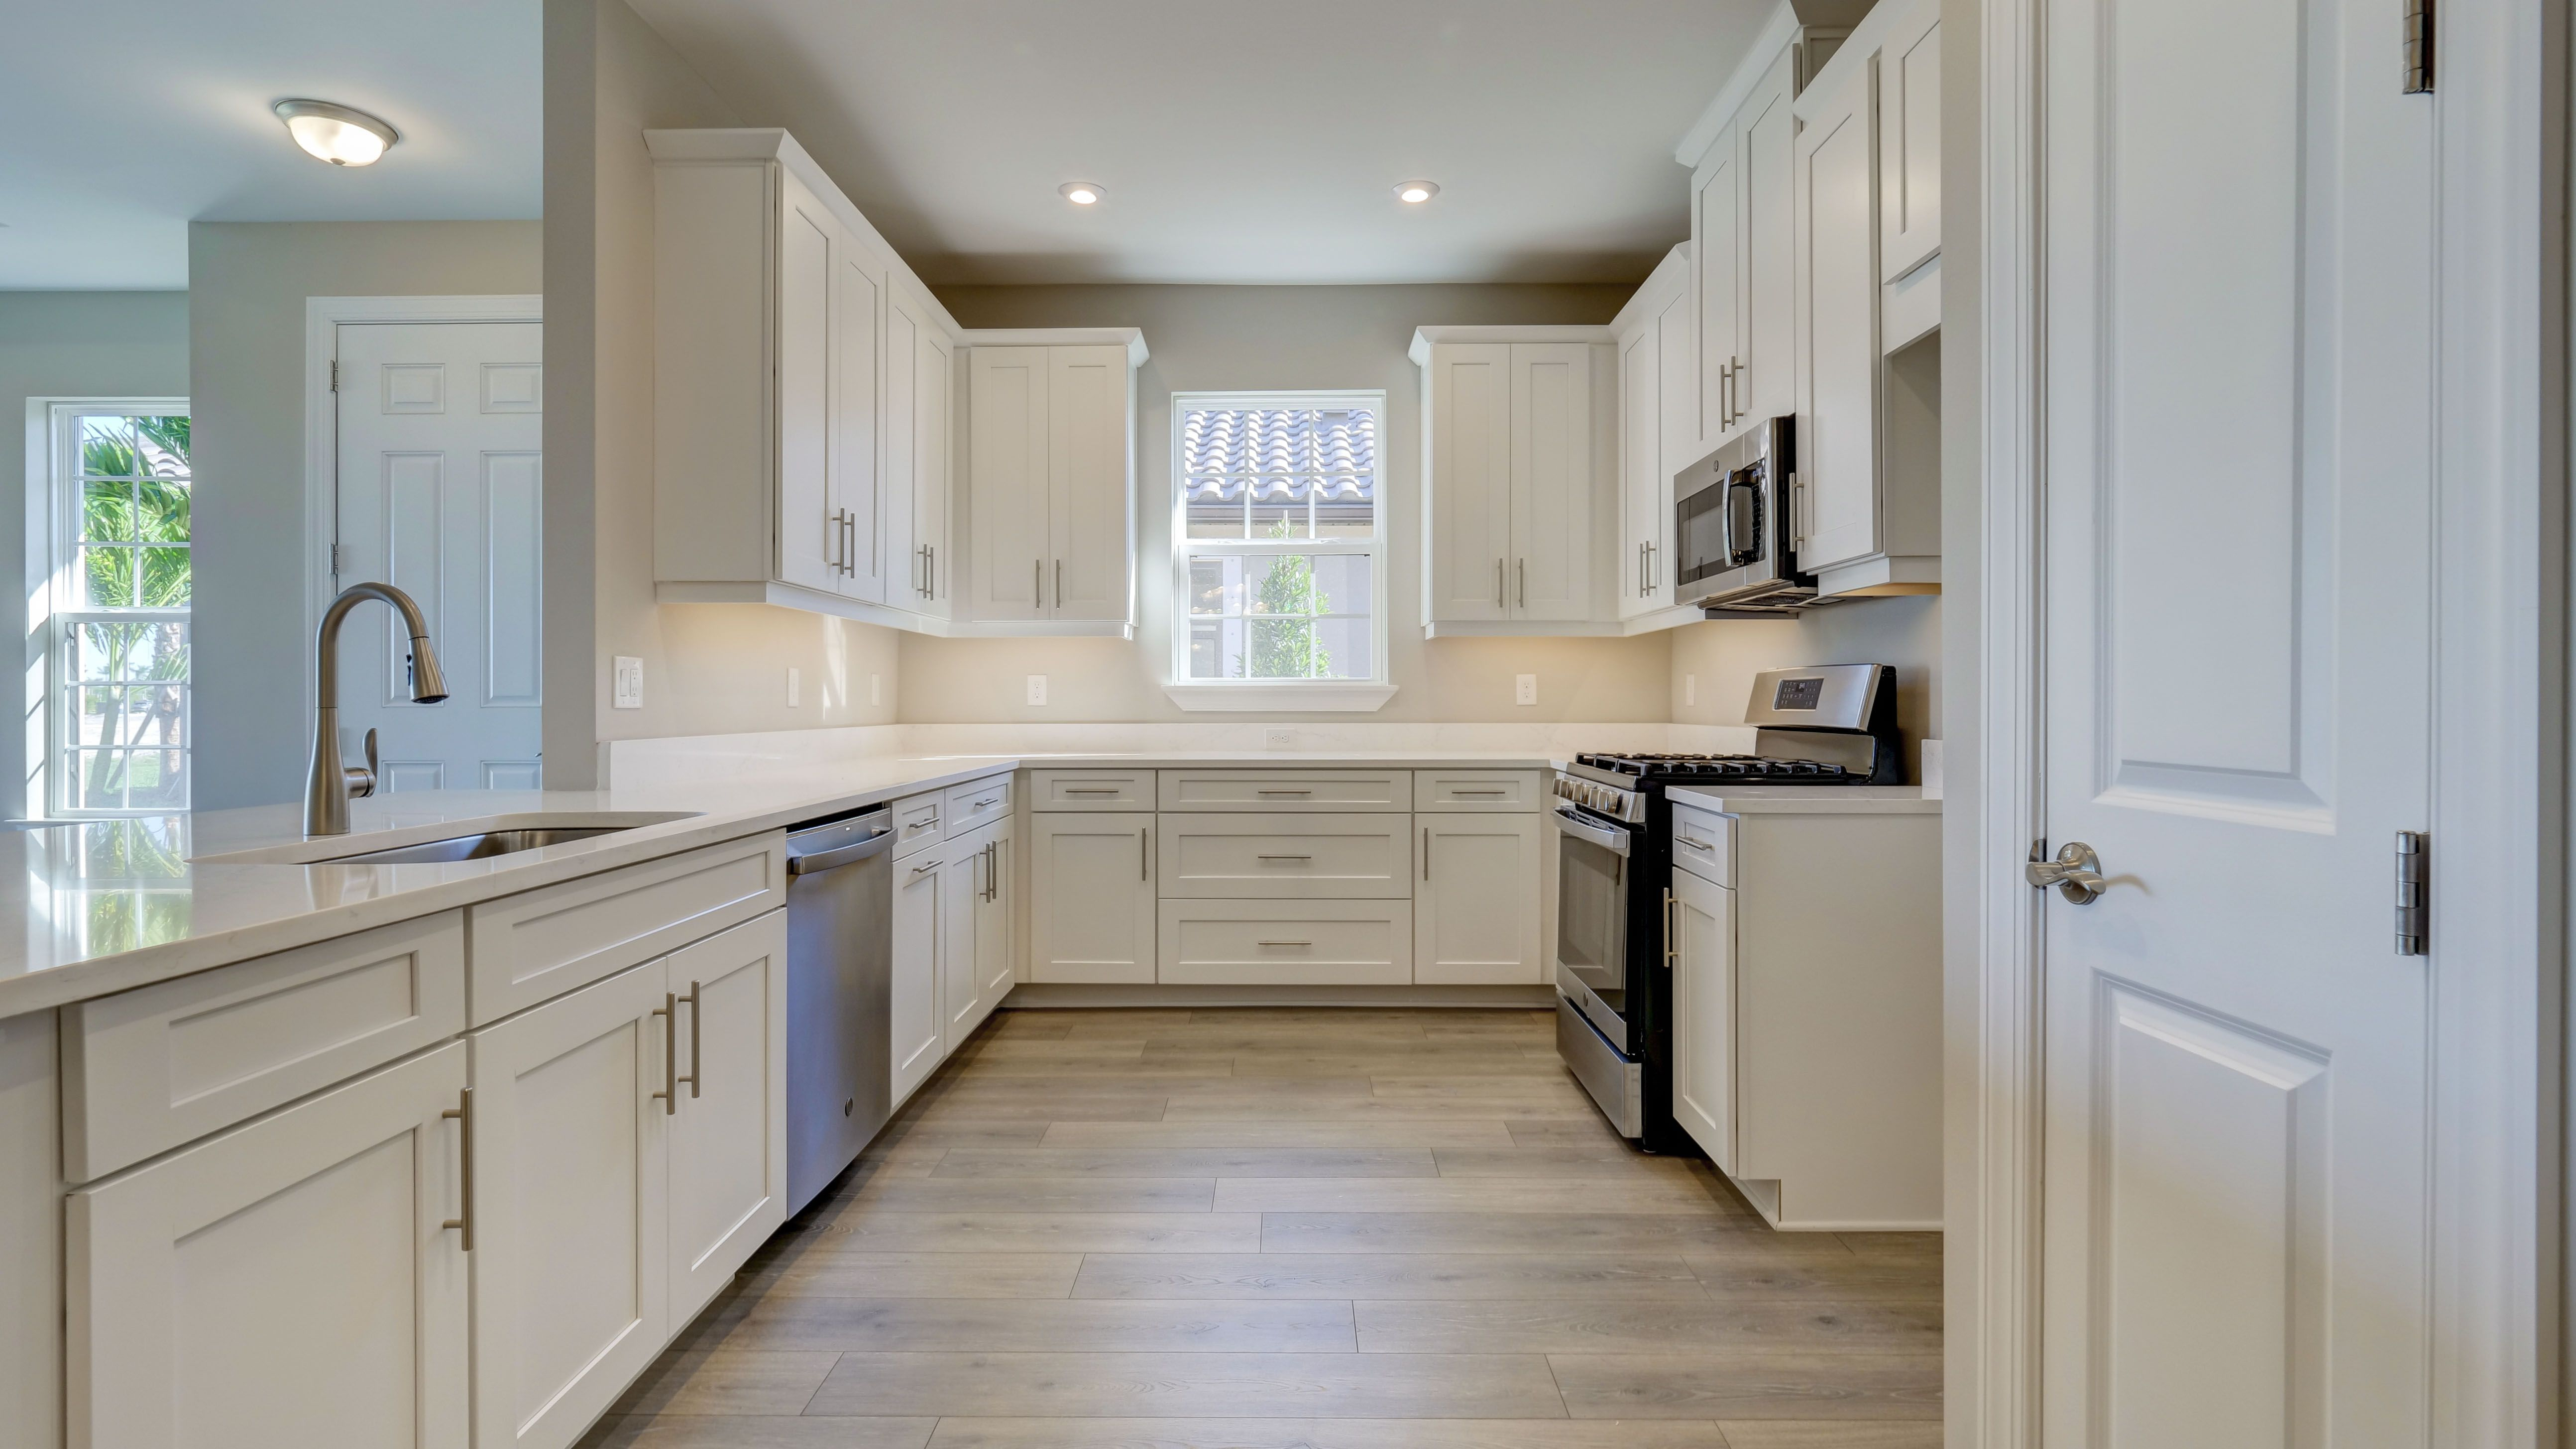 Kitchen featured in the Mazzano By Taylor Morrison in Naples, FL